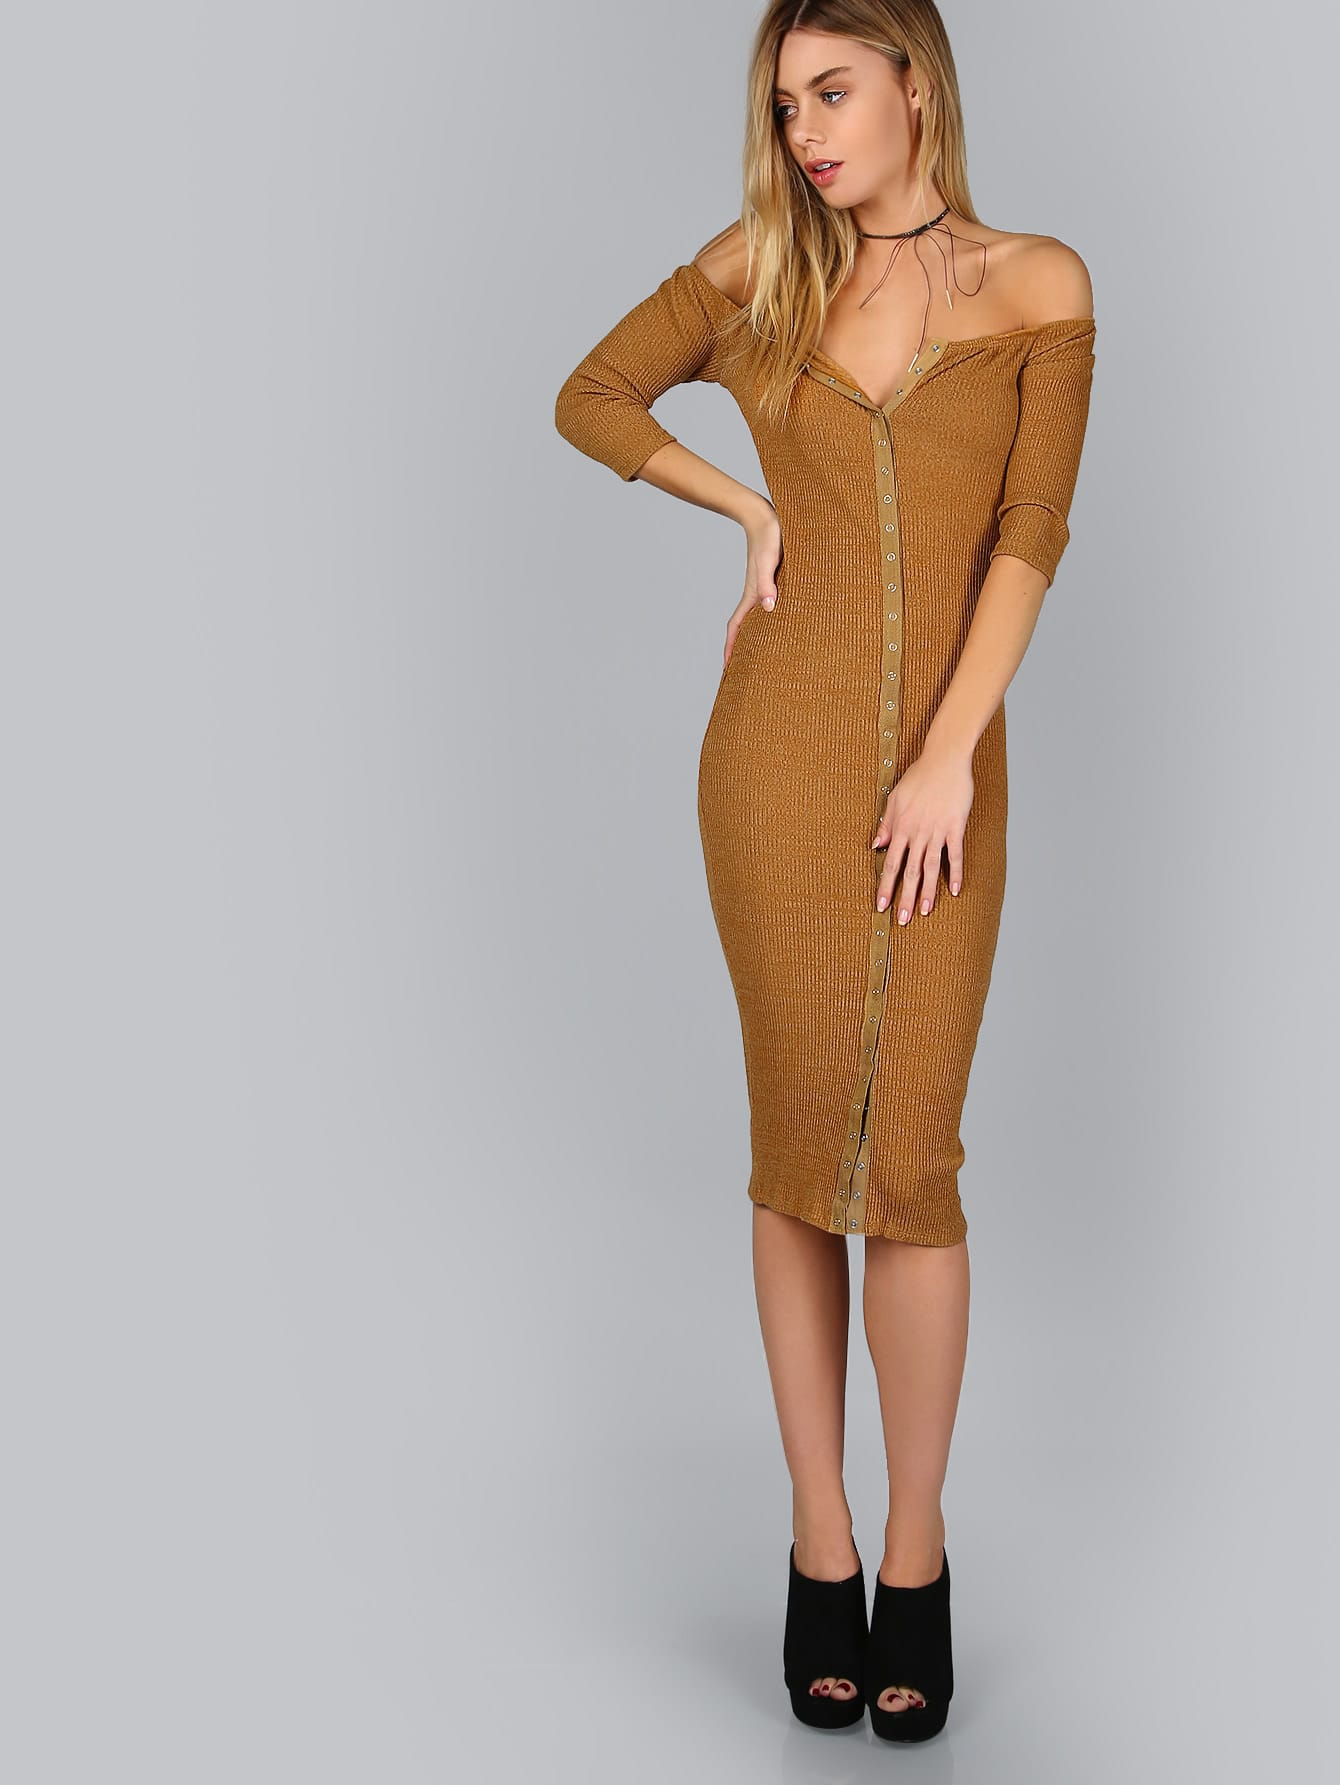 Brown Button Up Off The Shoulder Ribbed Dress dressmmc161024701